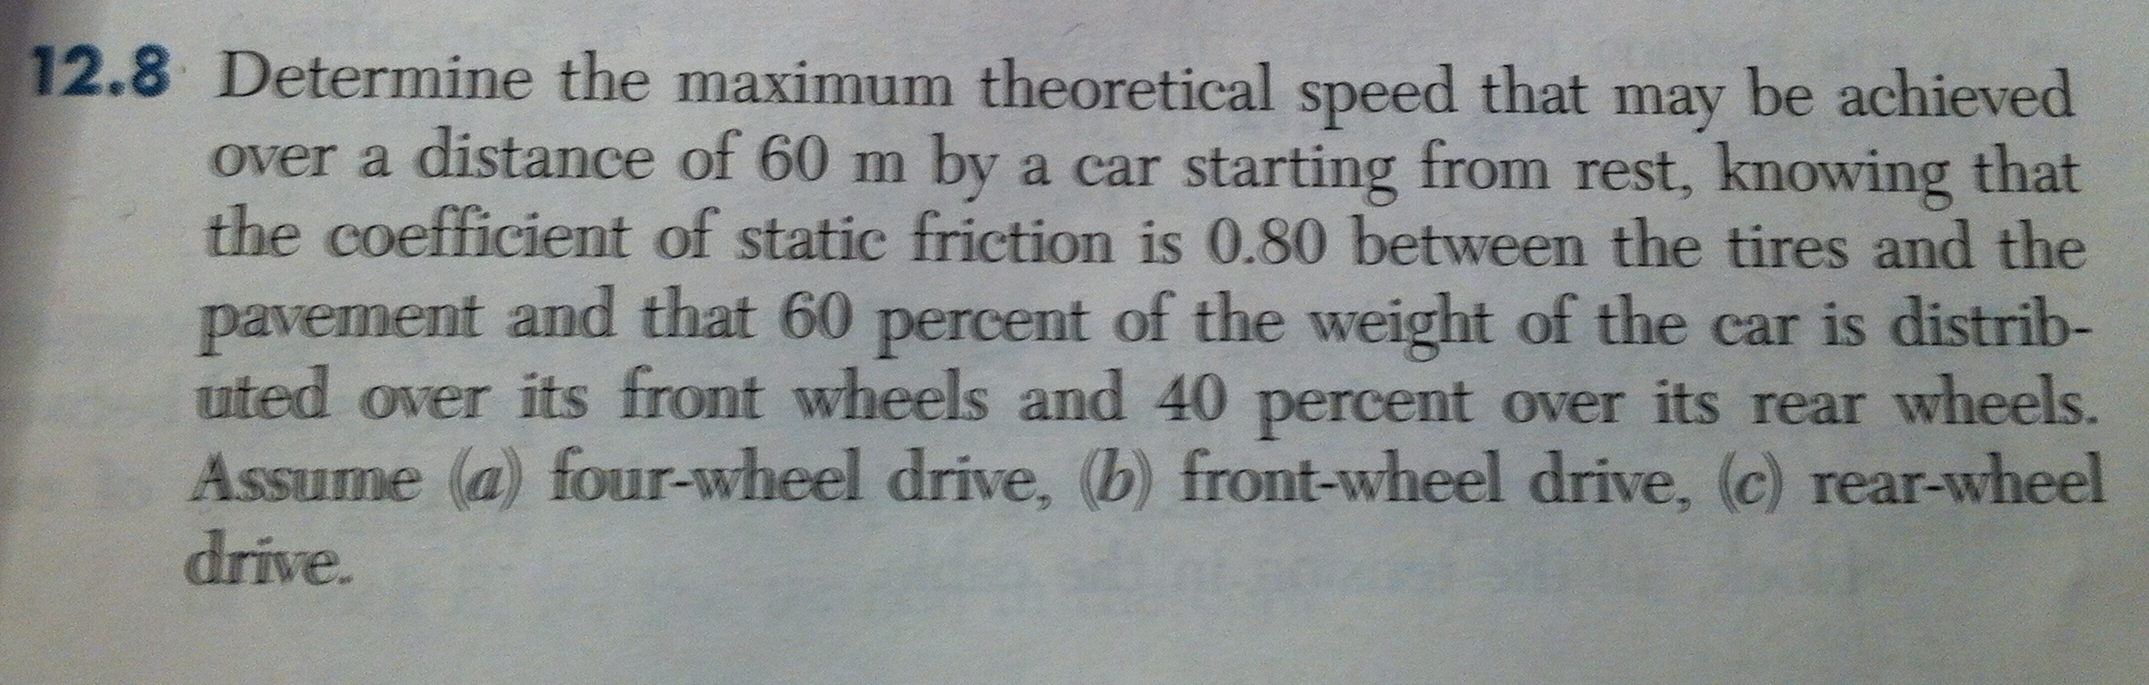 Determine the maximum theoretical speed that may b